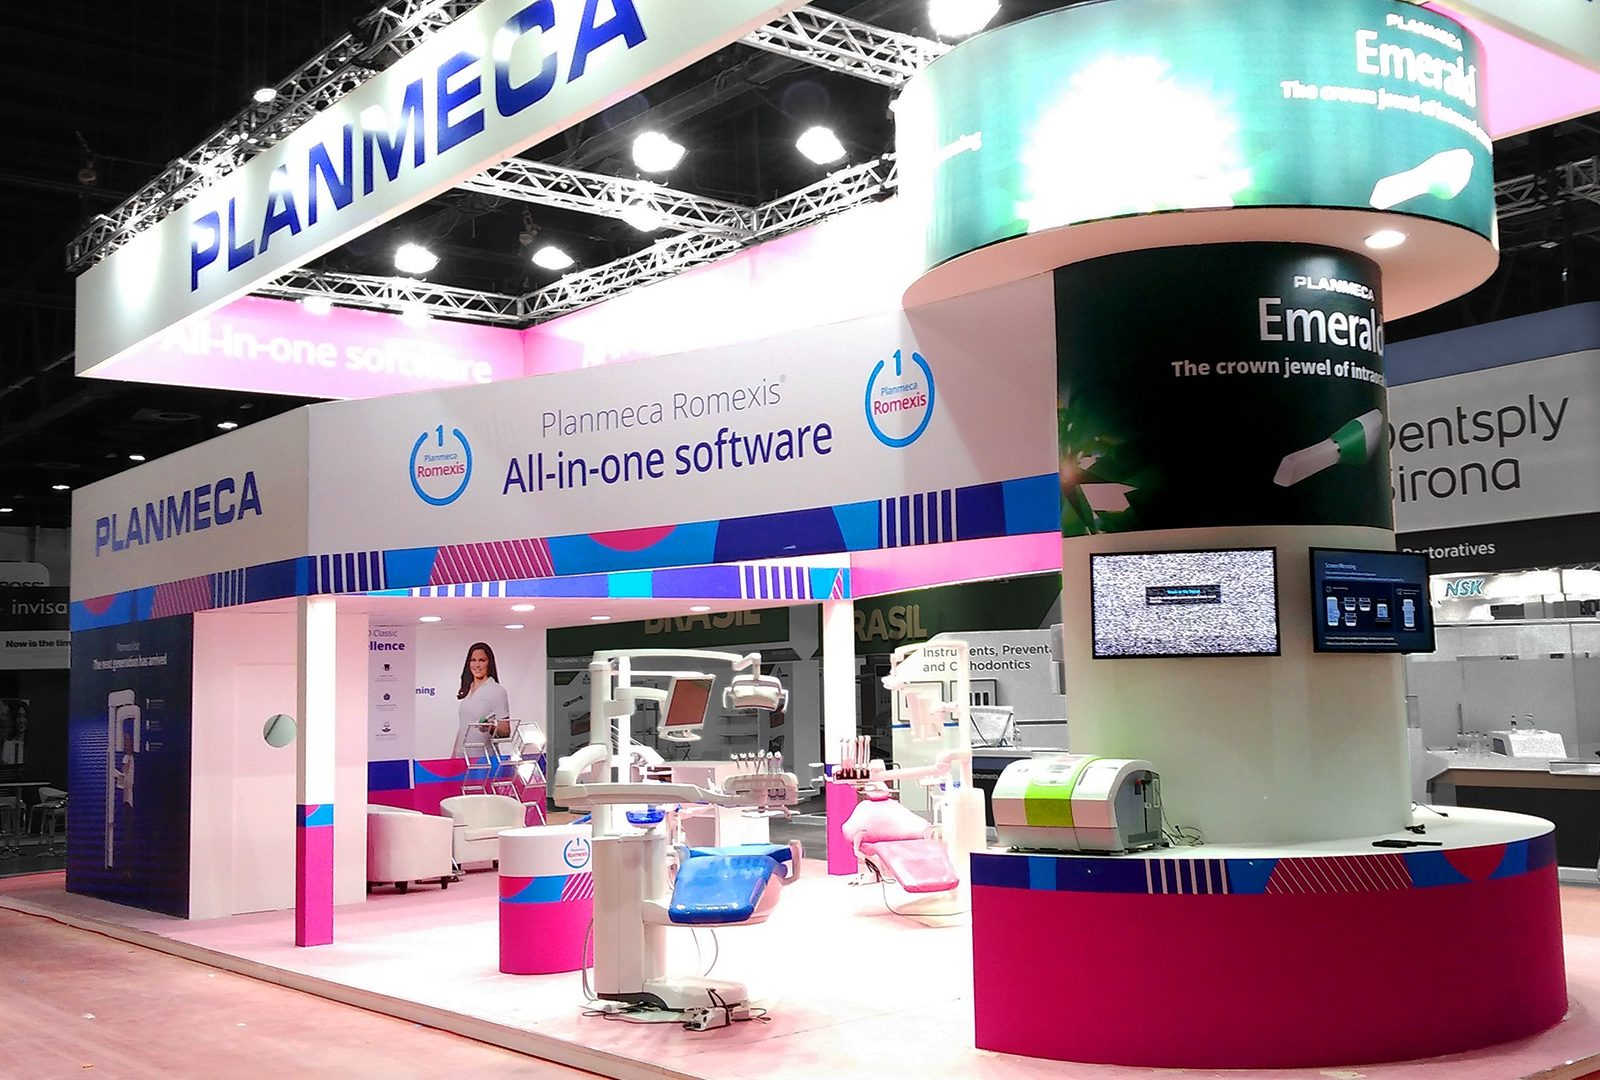 Exhibition Stand Double Decker : Bright double decker stand for planmeca at aeedc 2018 alpaca expo